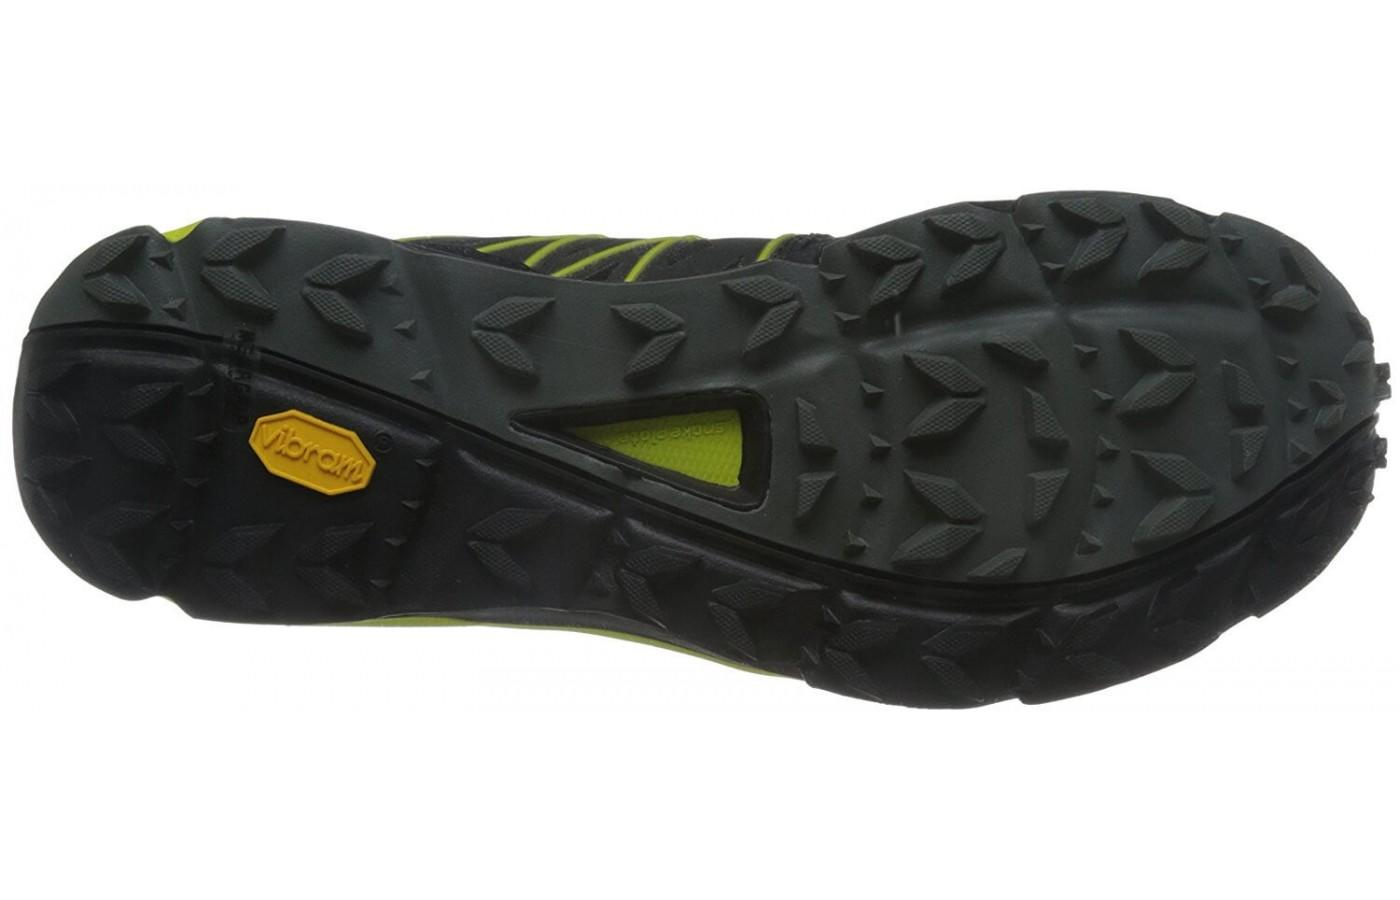 The North Face Ultra Vertical has aggressive multi-directional lugs for traction on tough trails